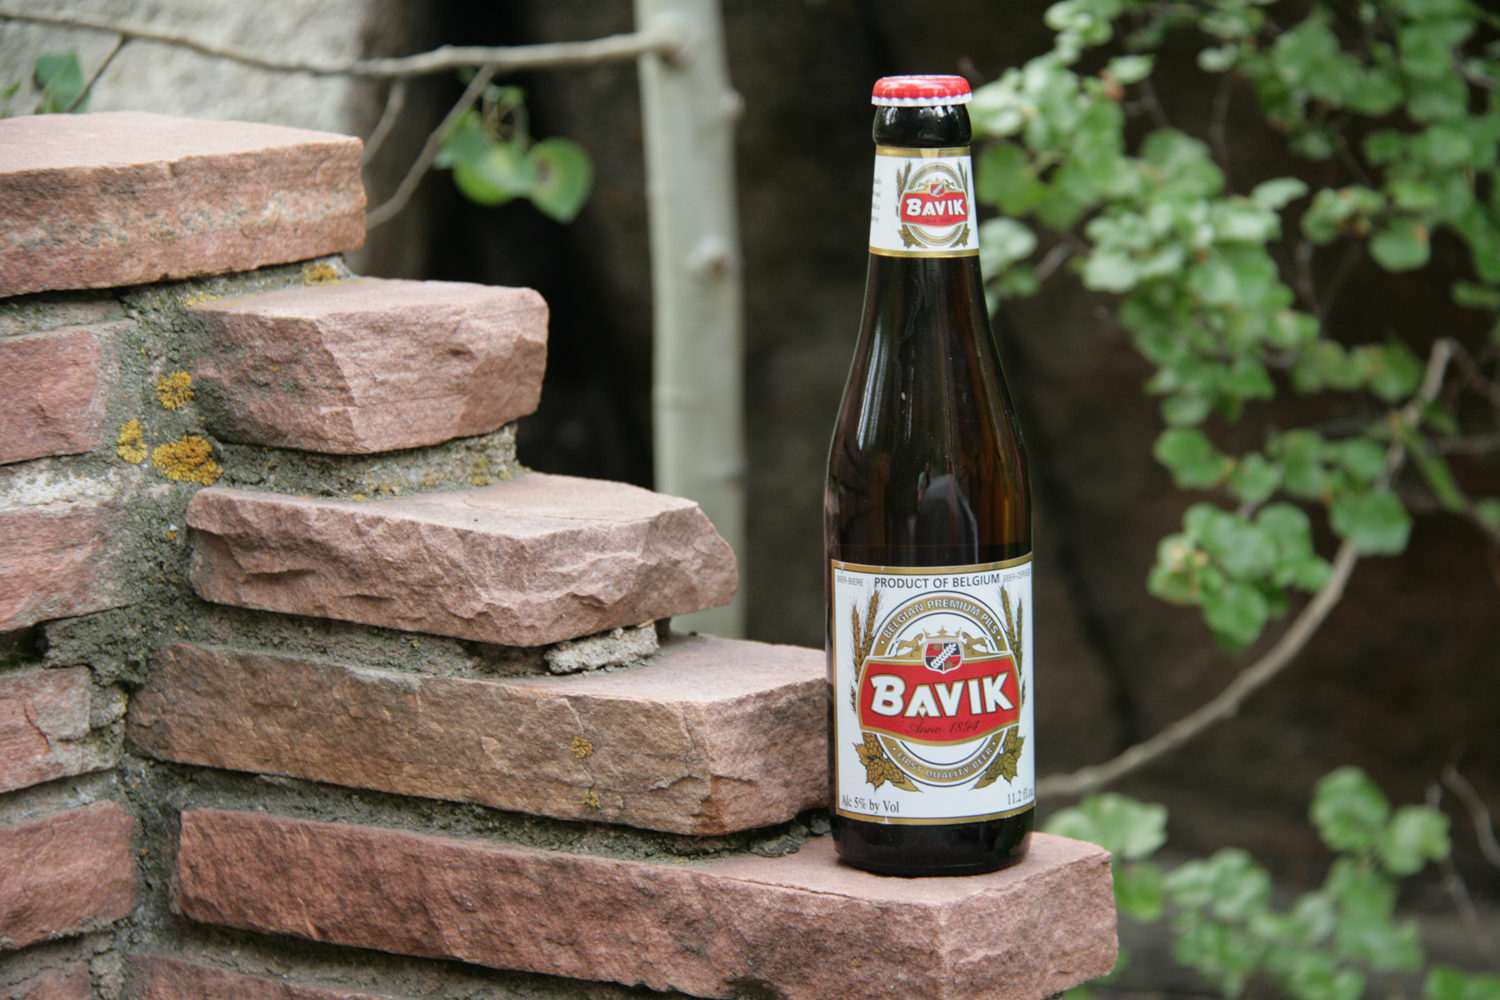 Bavik Pils is a Belgium summer beer.